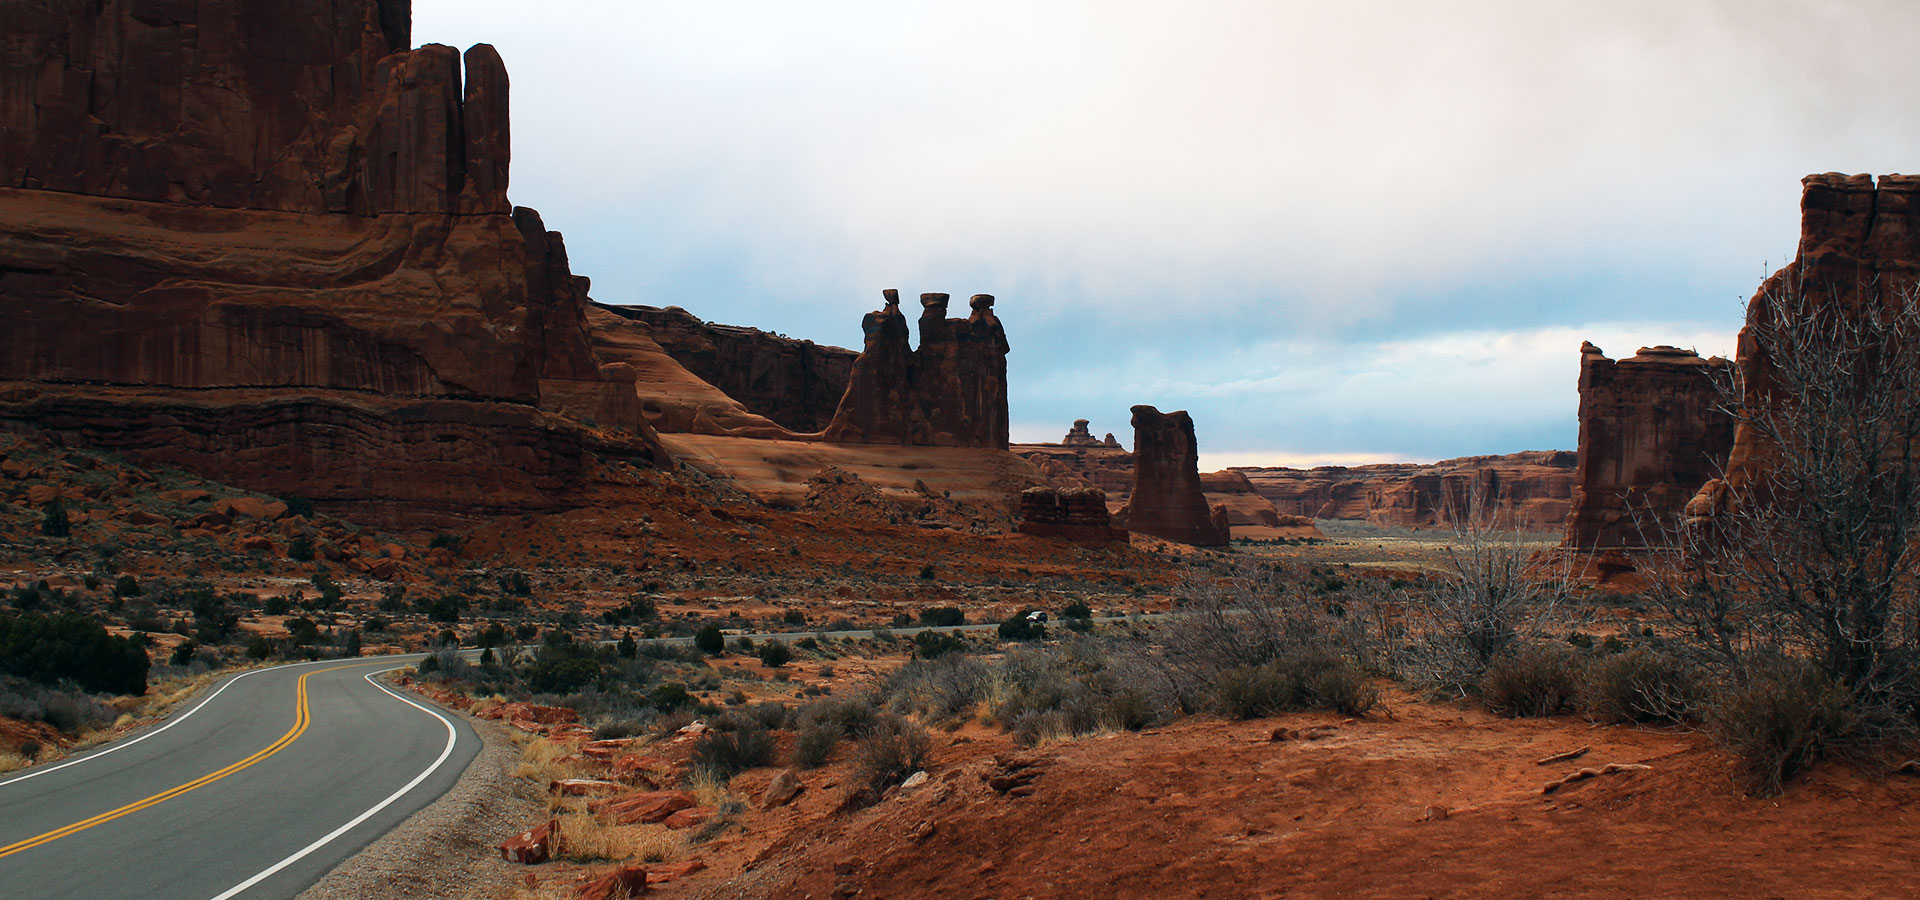 The drive to Arches National Park